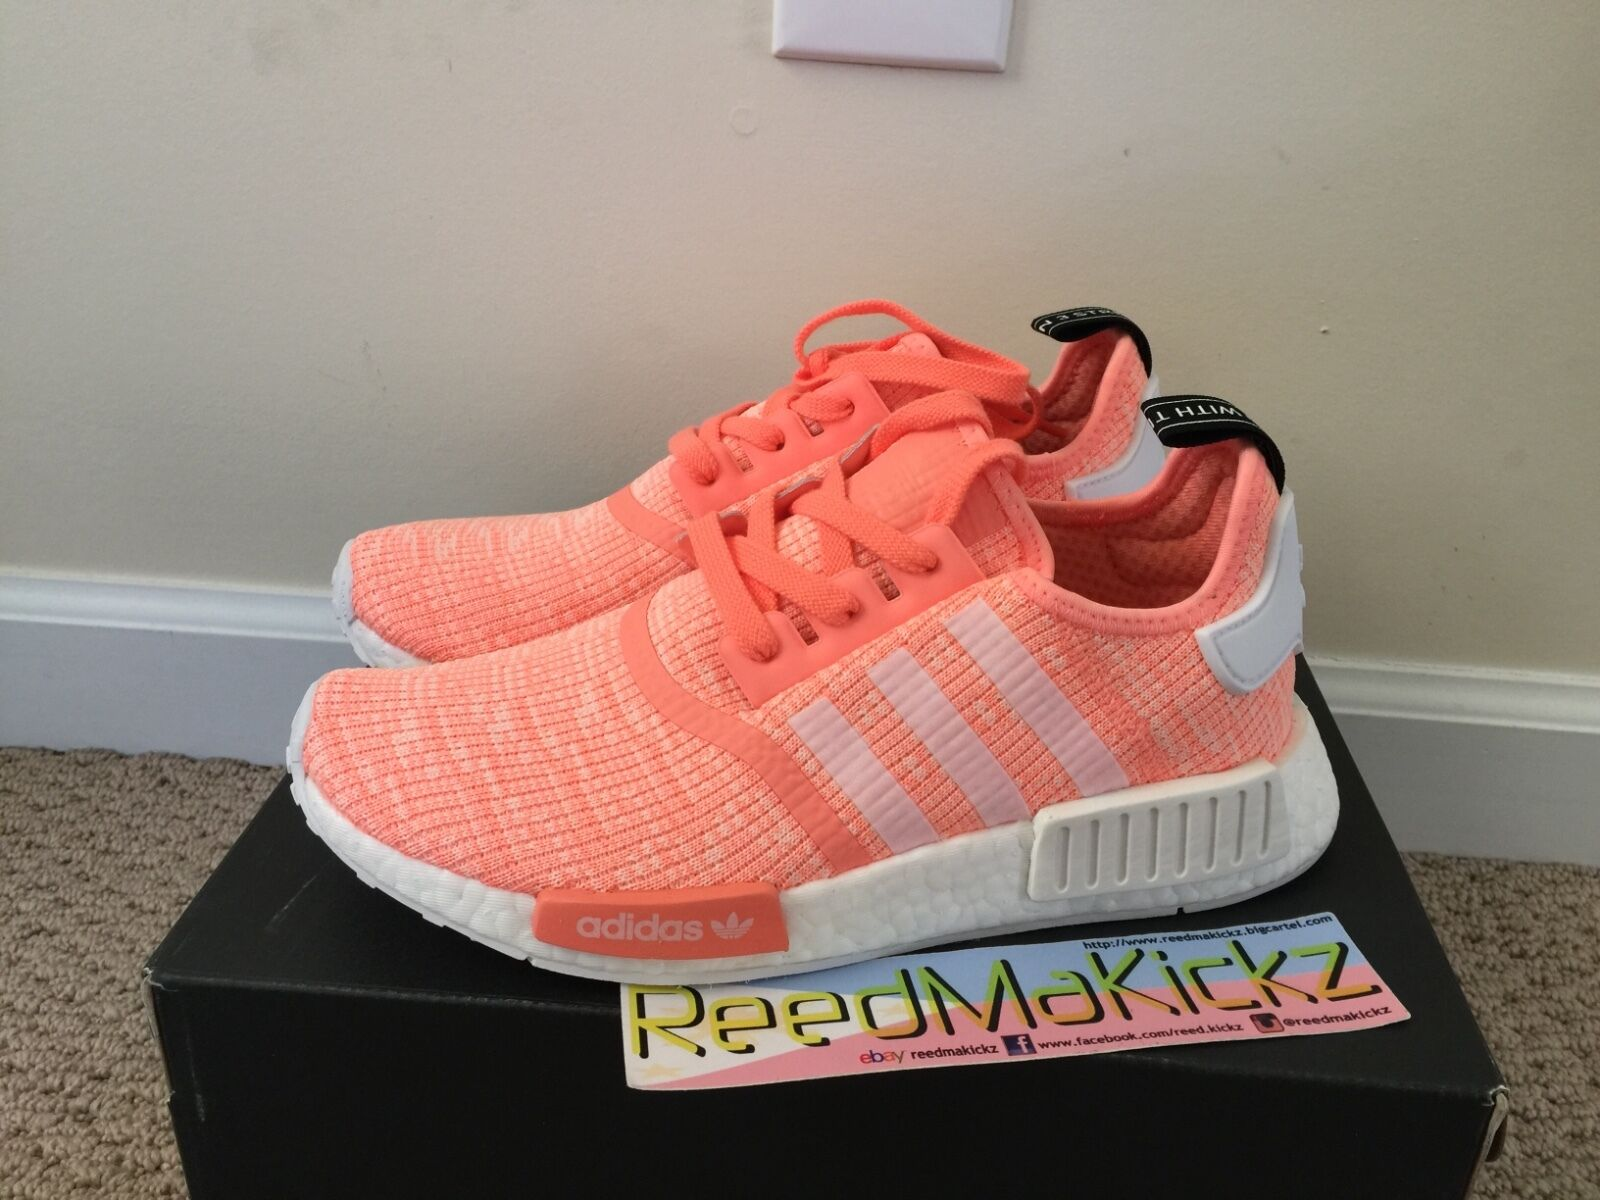 adidas nmd r1 black and pink ebay adidas tennis shoes